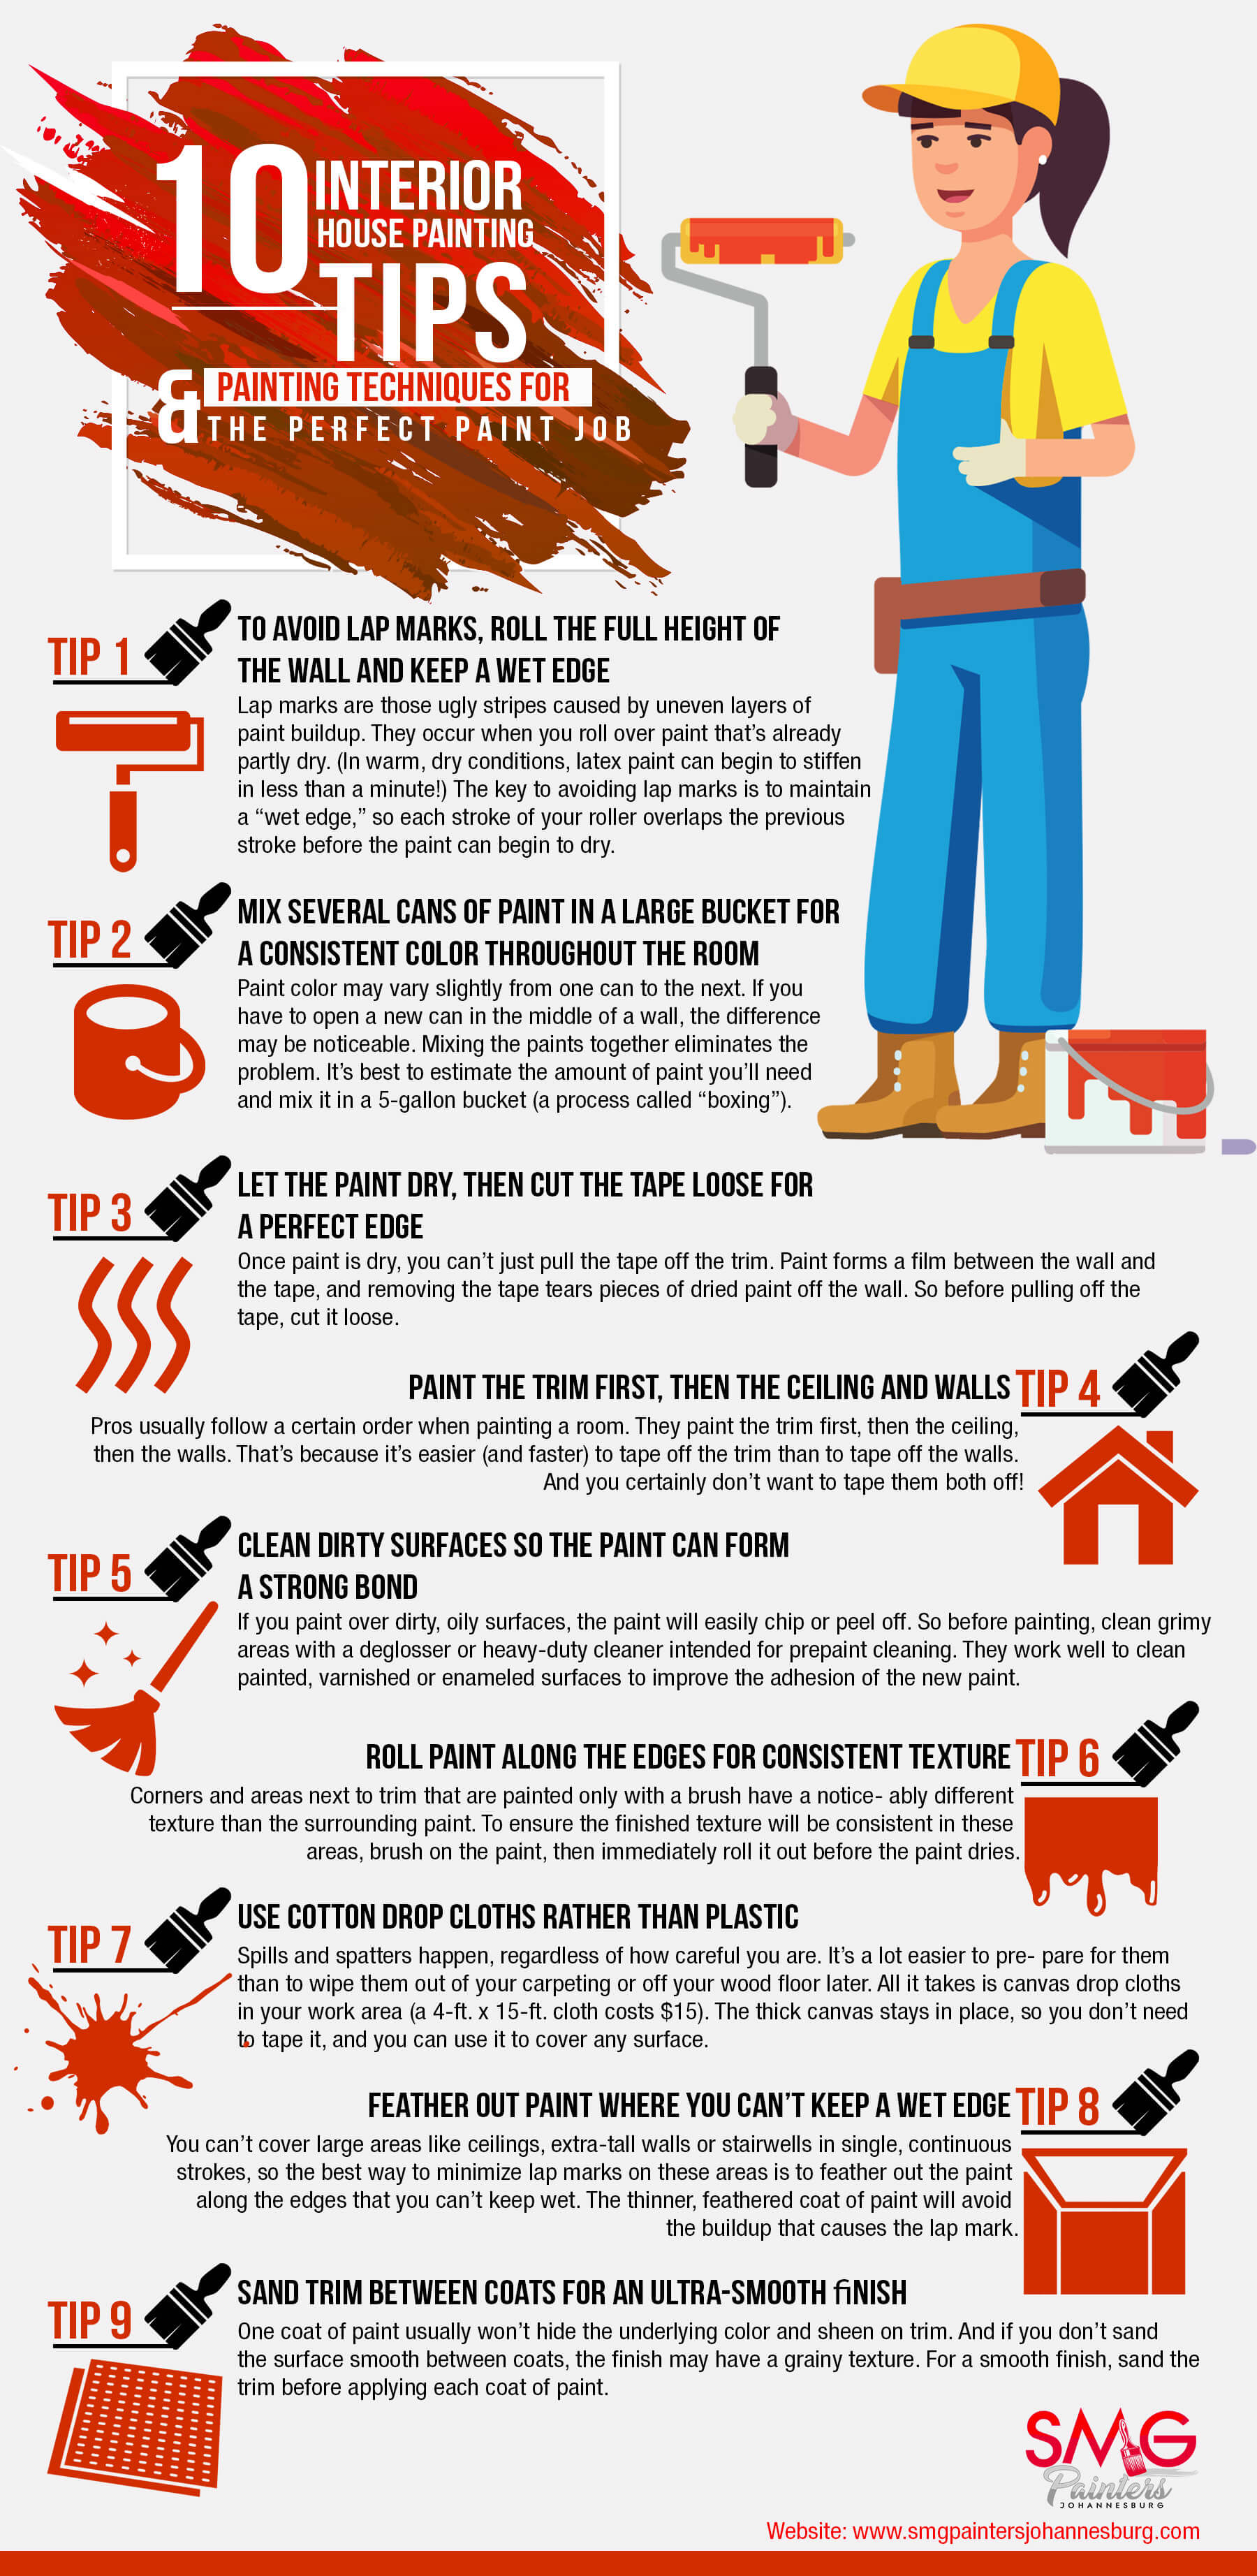 interior-house-painting-tips-infographic-plaza